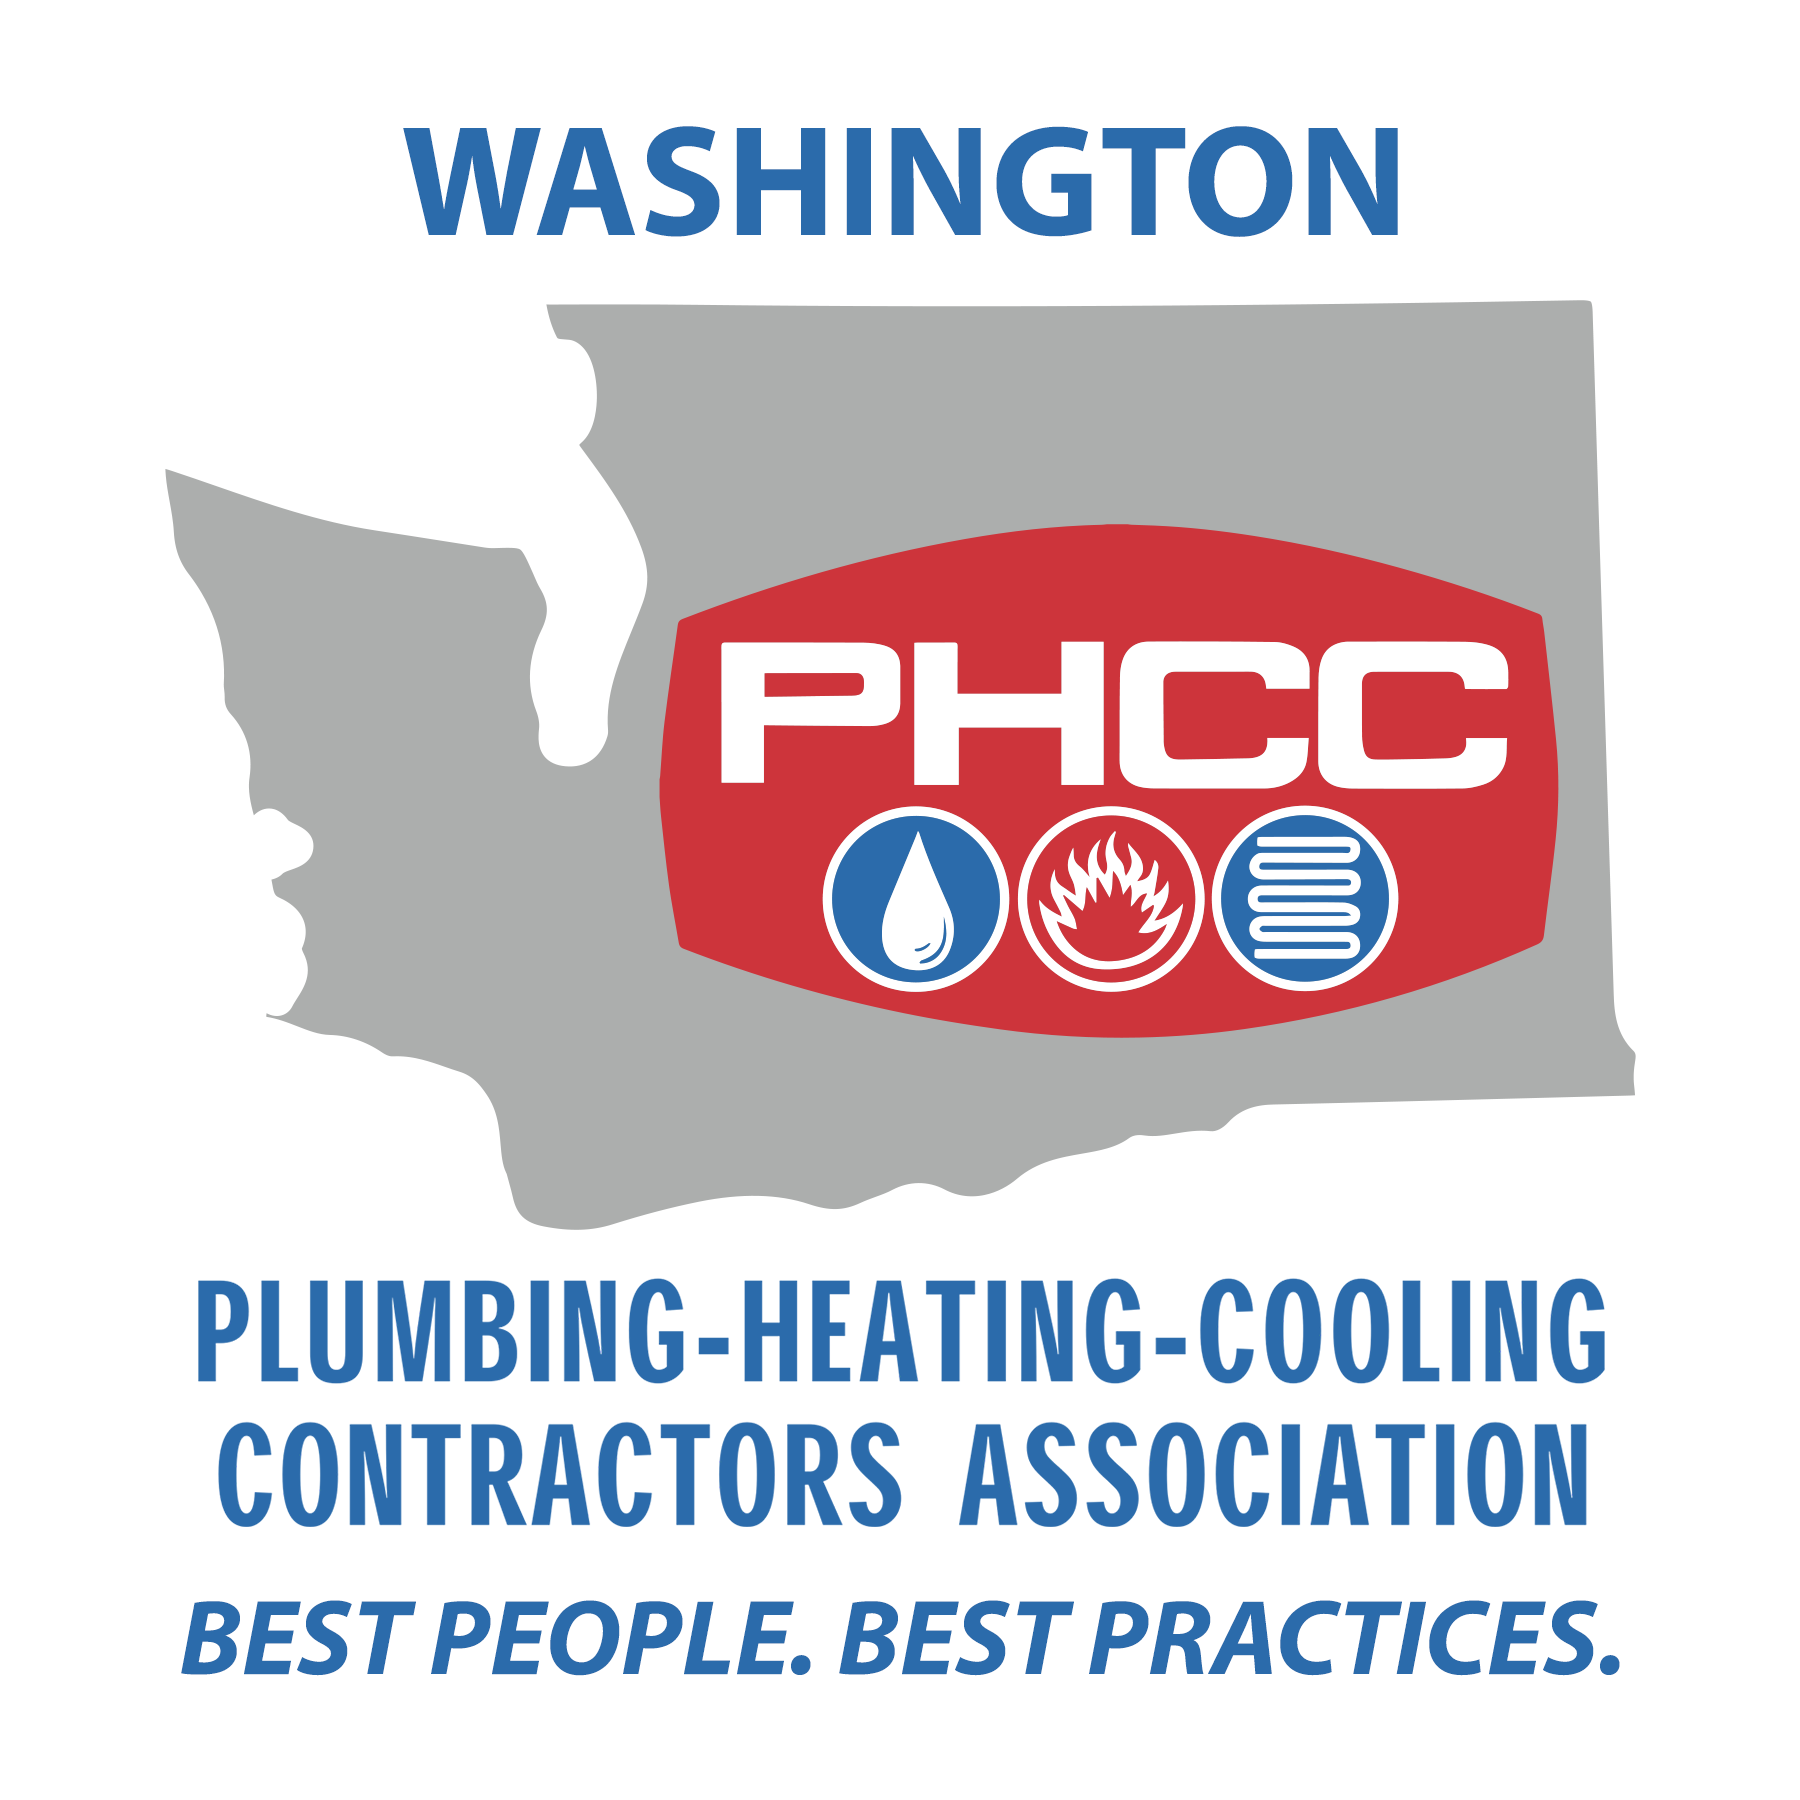 plumbing, heating,  and cooling contractors association